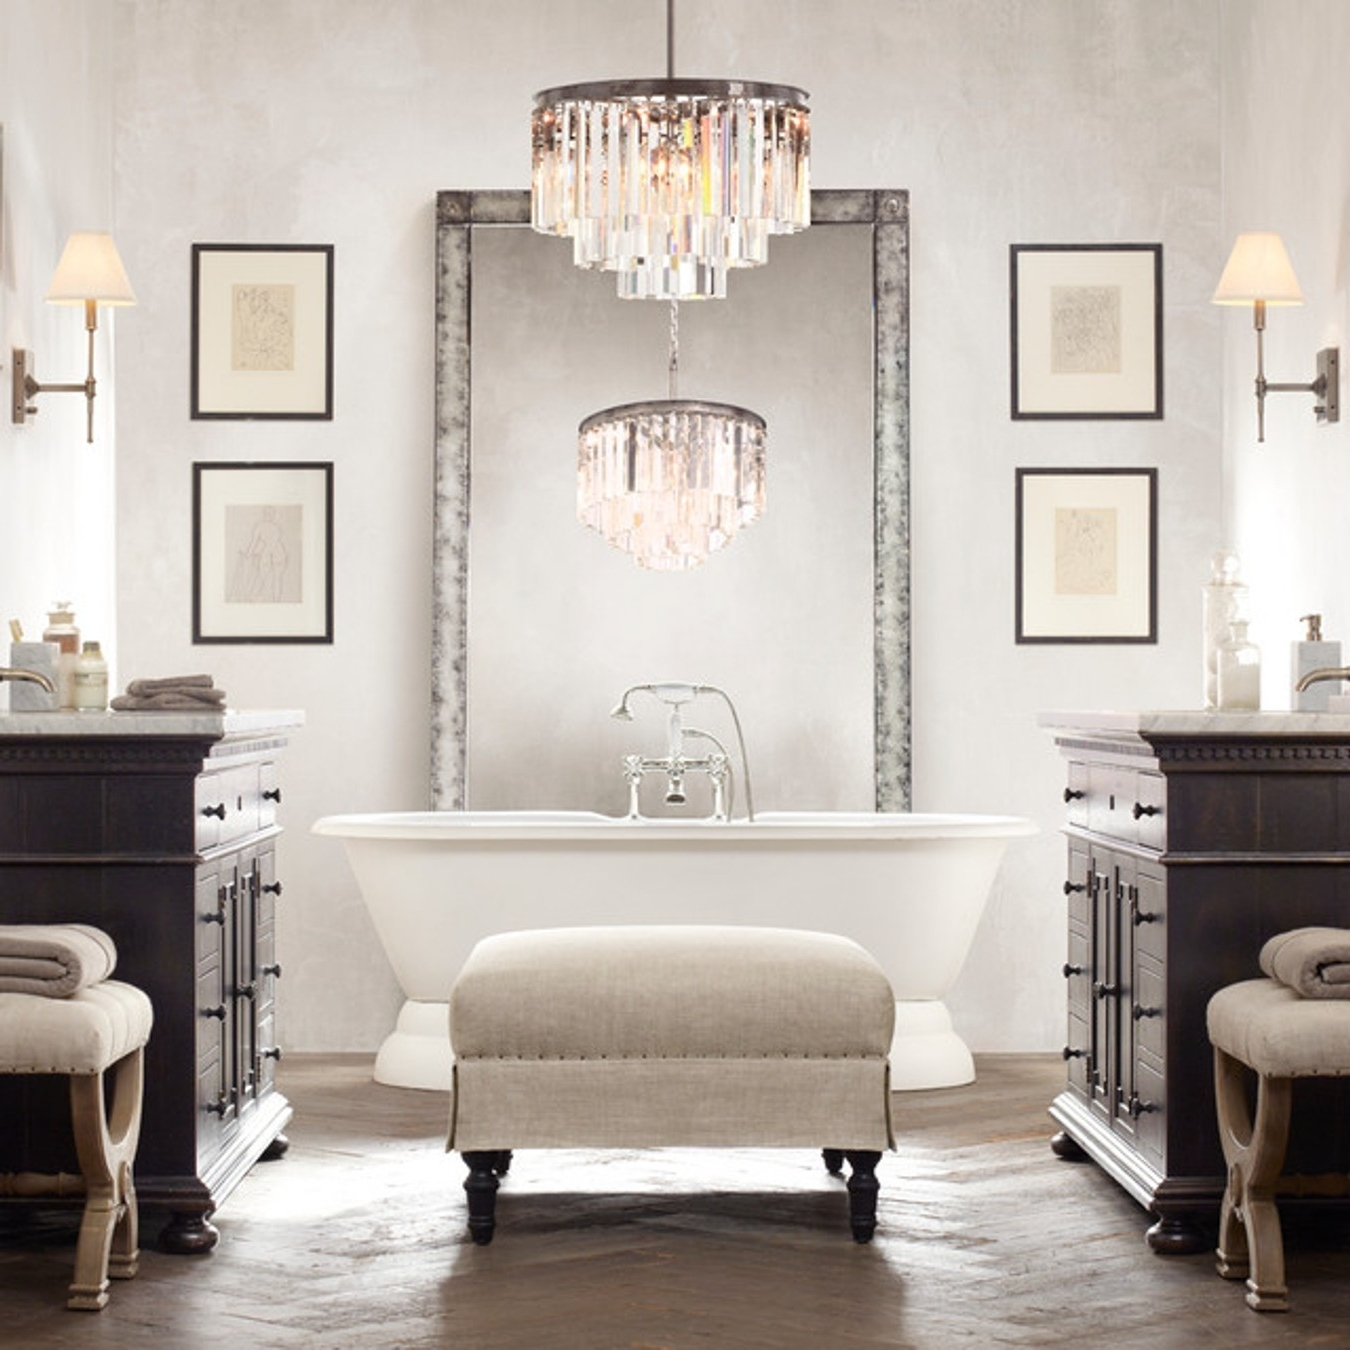 Bedroom & Bathroom: Breathtaking Bathroom Chandeliers For Throughout Preferred Bathroom Chandelier Lighting (View 13 of 20)